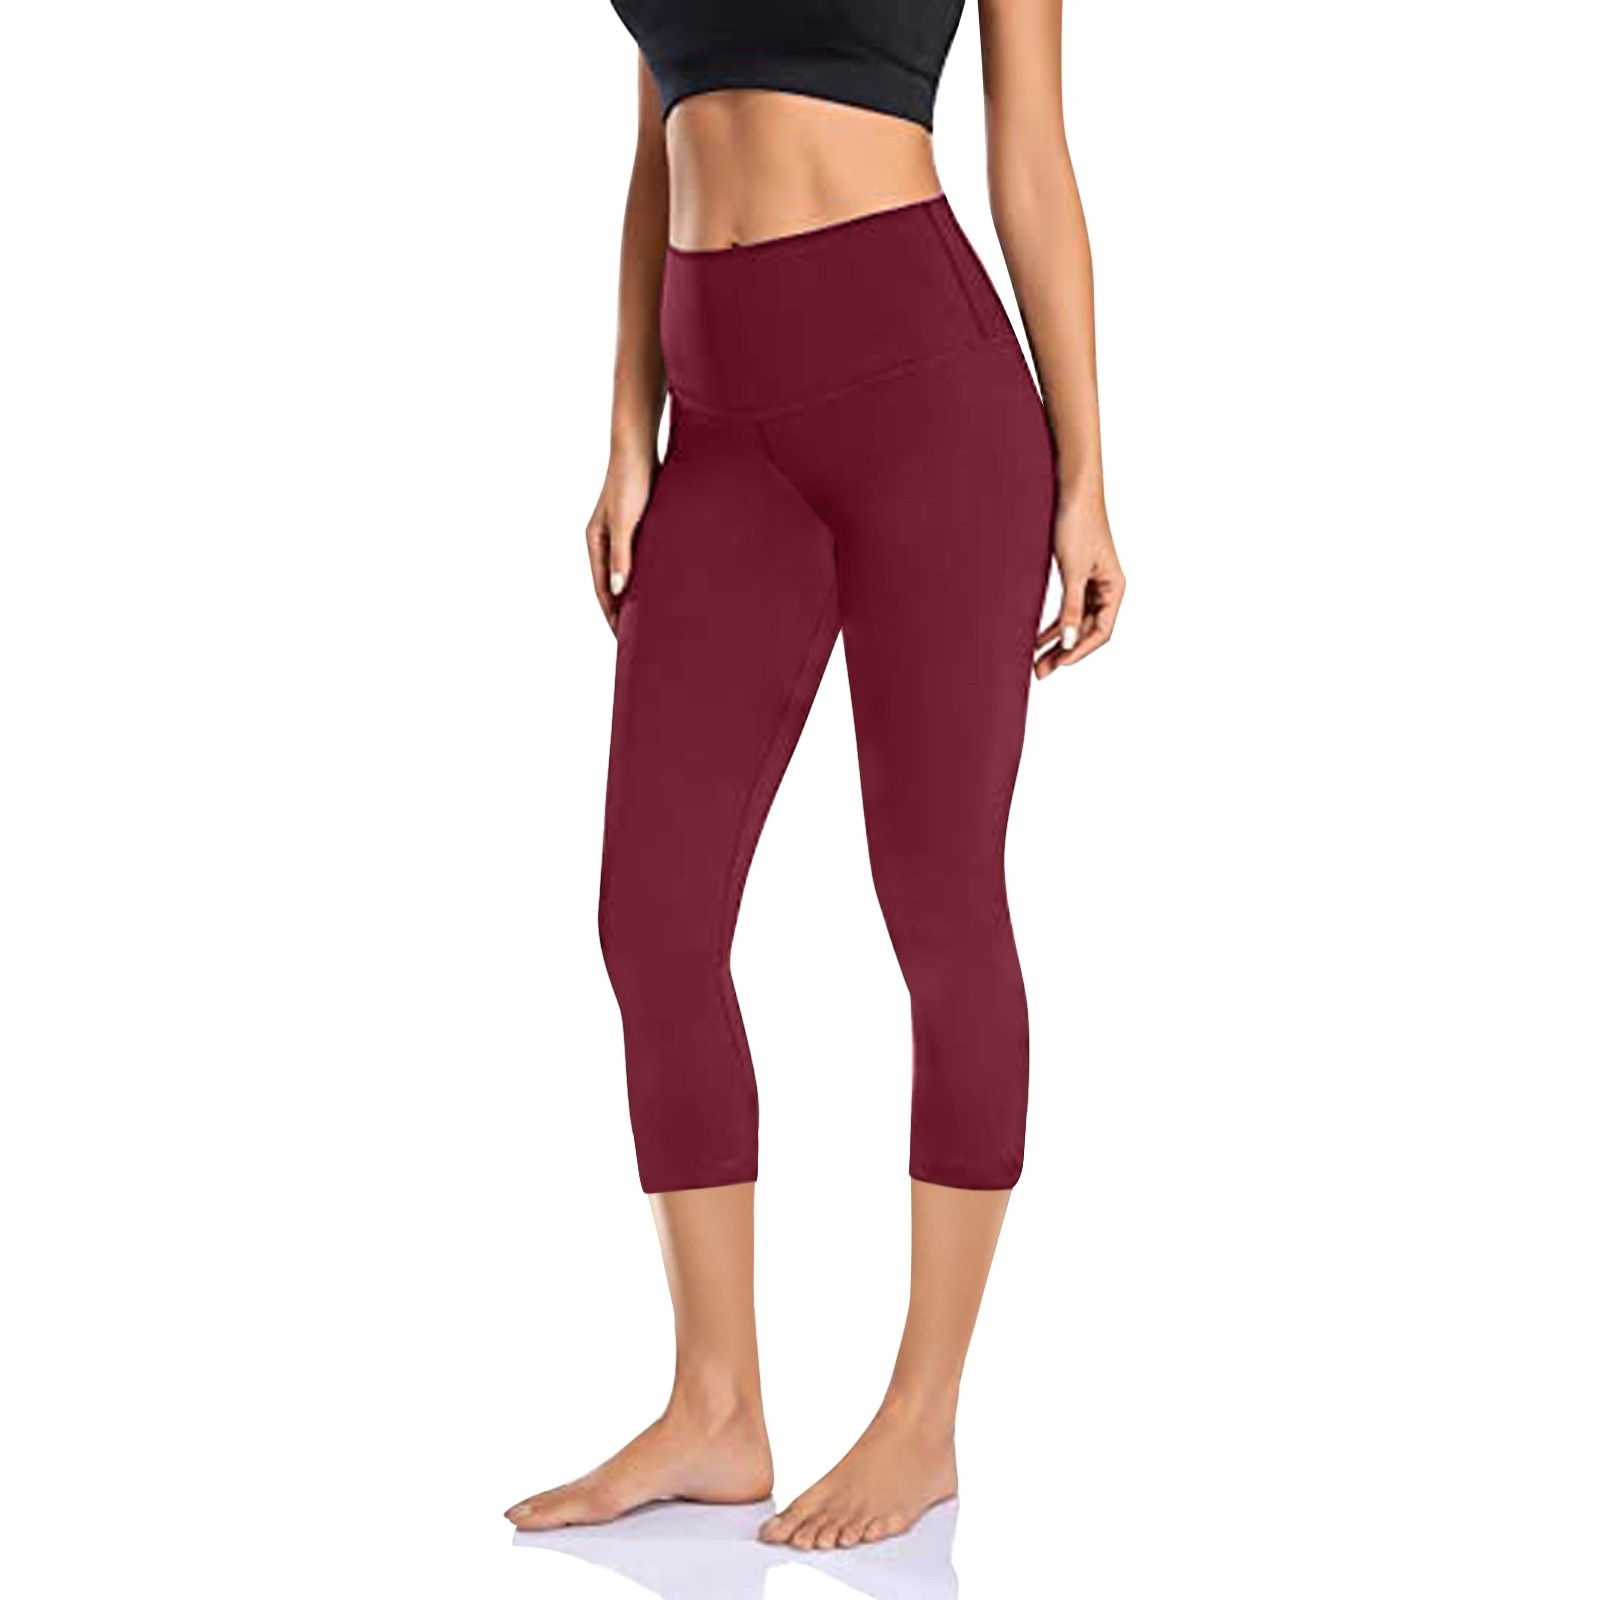 High waist solid color multicolor hip sexy sports pants running hip leggings women's fitness jogging gym stretch sports pants 40